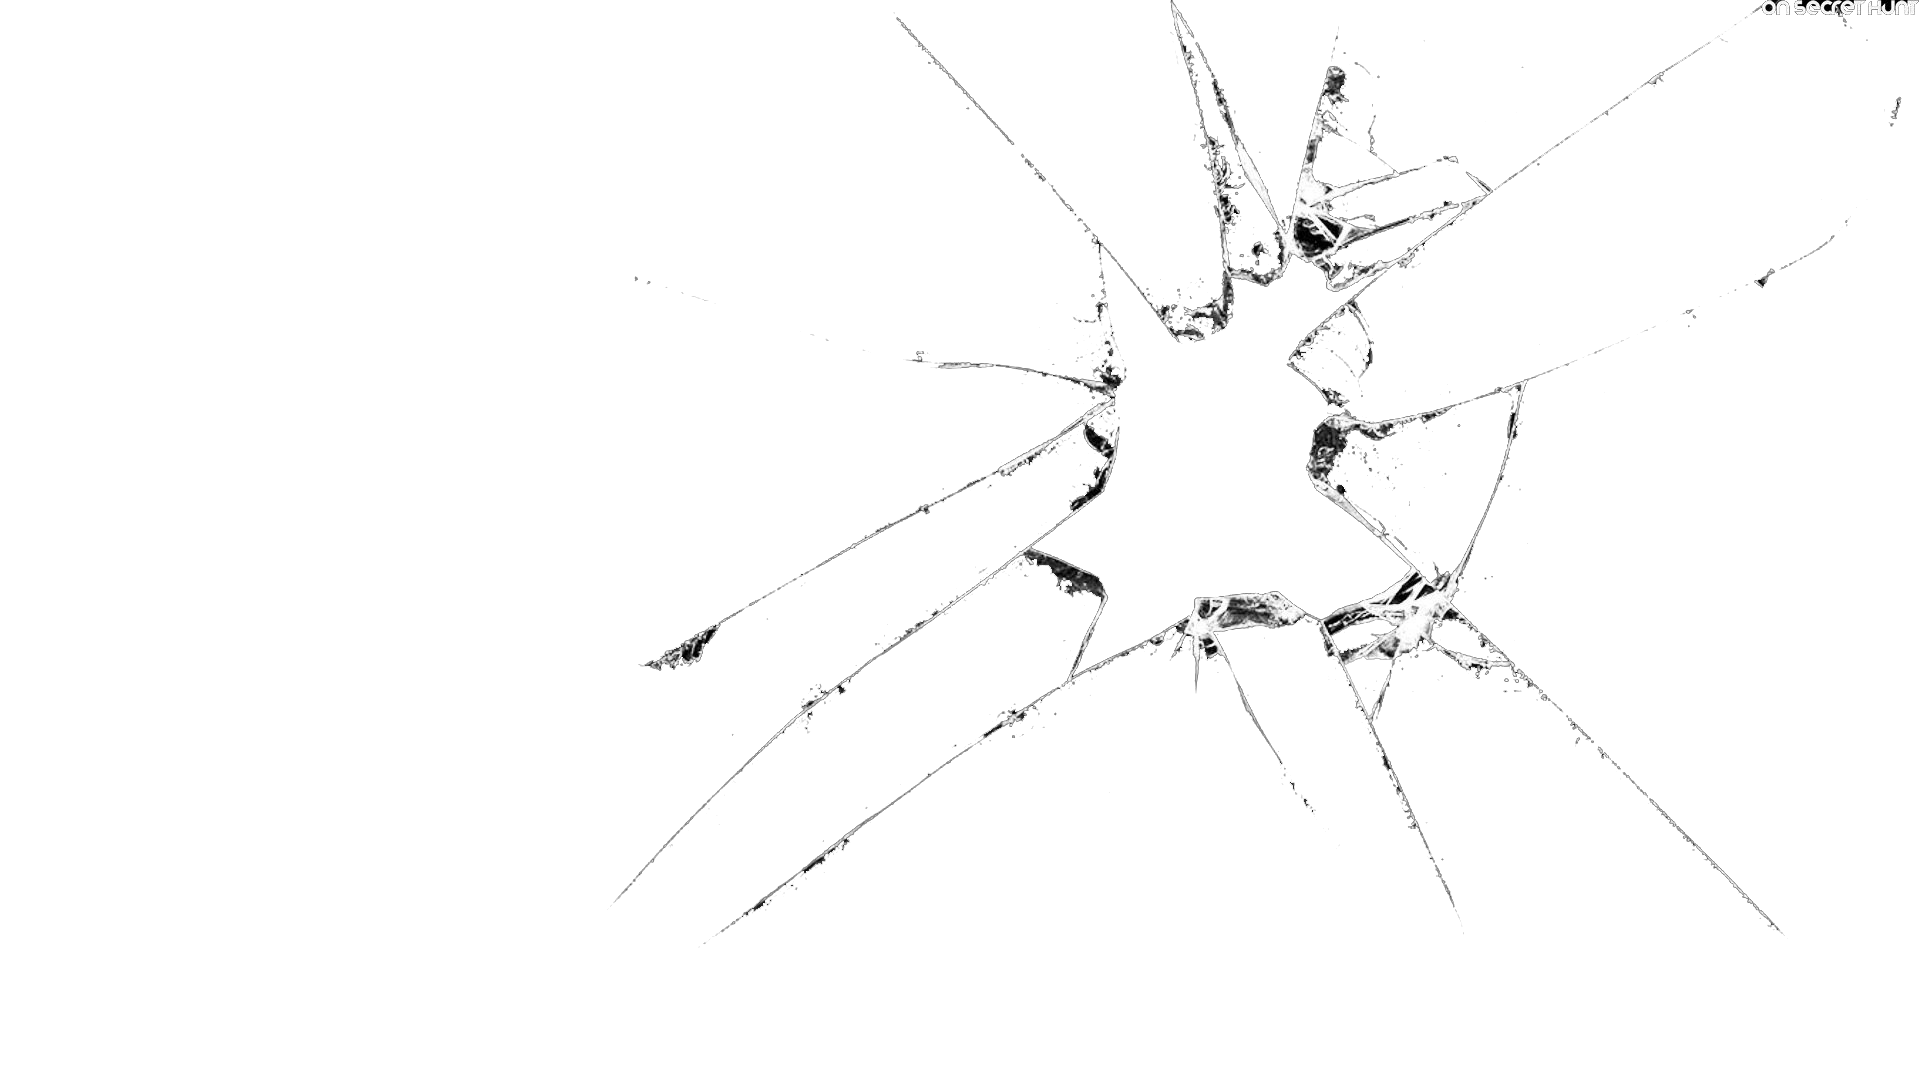 Broken Glass clipart #5, Download drawings